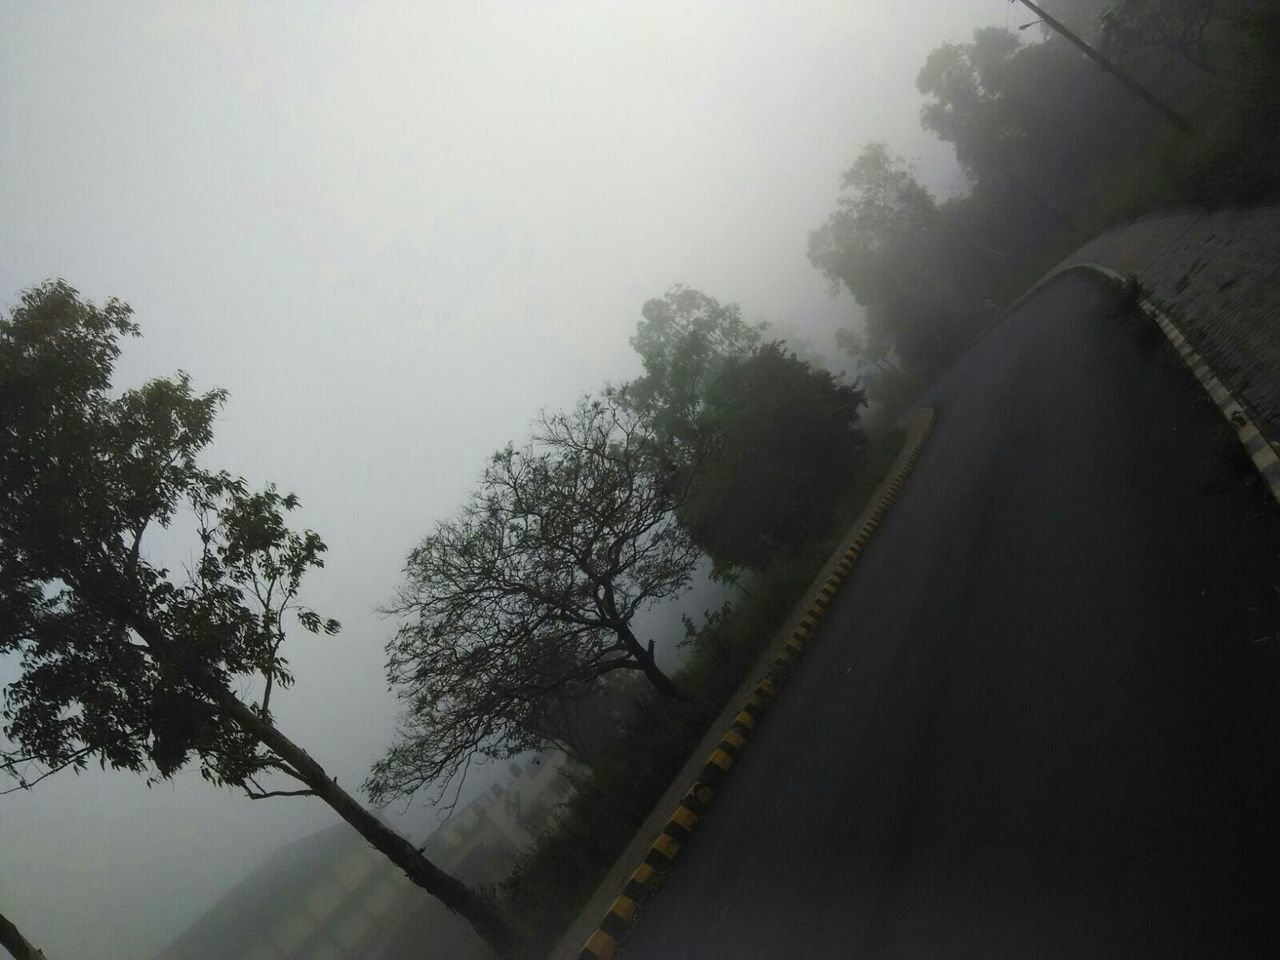 tree, transportation, nature, fog, no people, day, rail transportation, road, railroad track, outdoors, the way forward, beauty in nature, landscape, scenics, sky